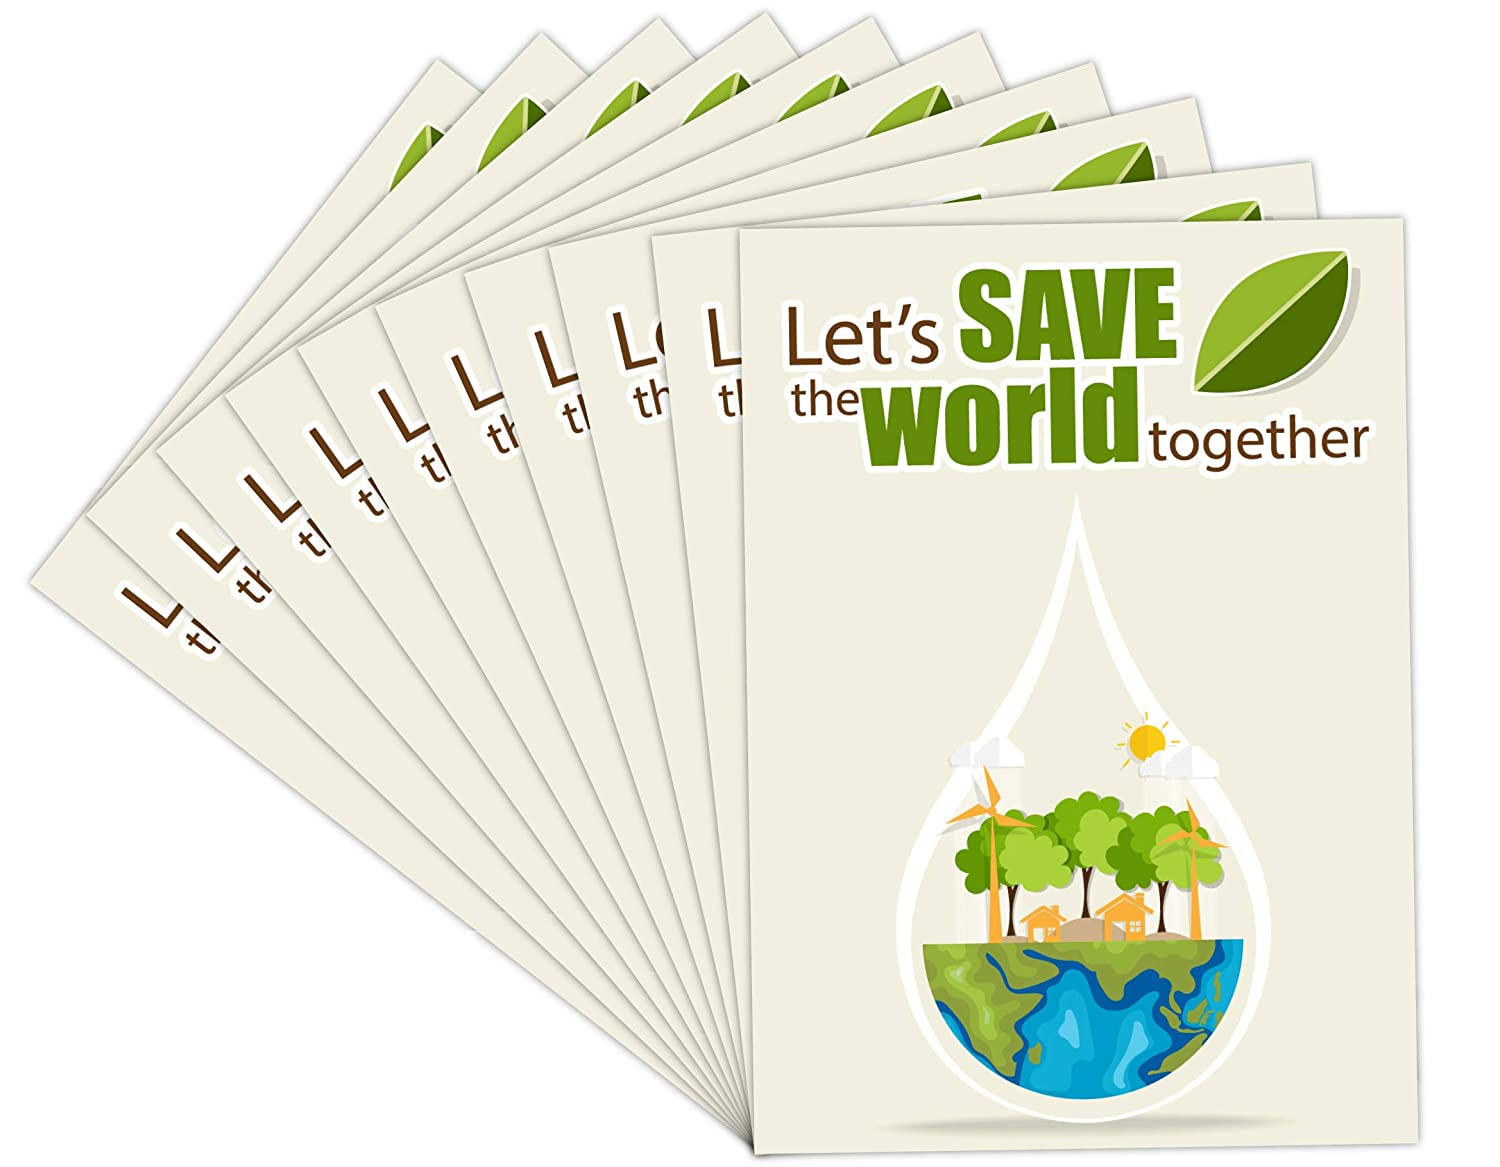 Save World Environment Quote Posters Set Of 10 Best For Rally